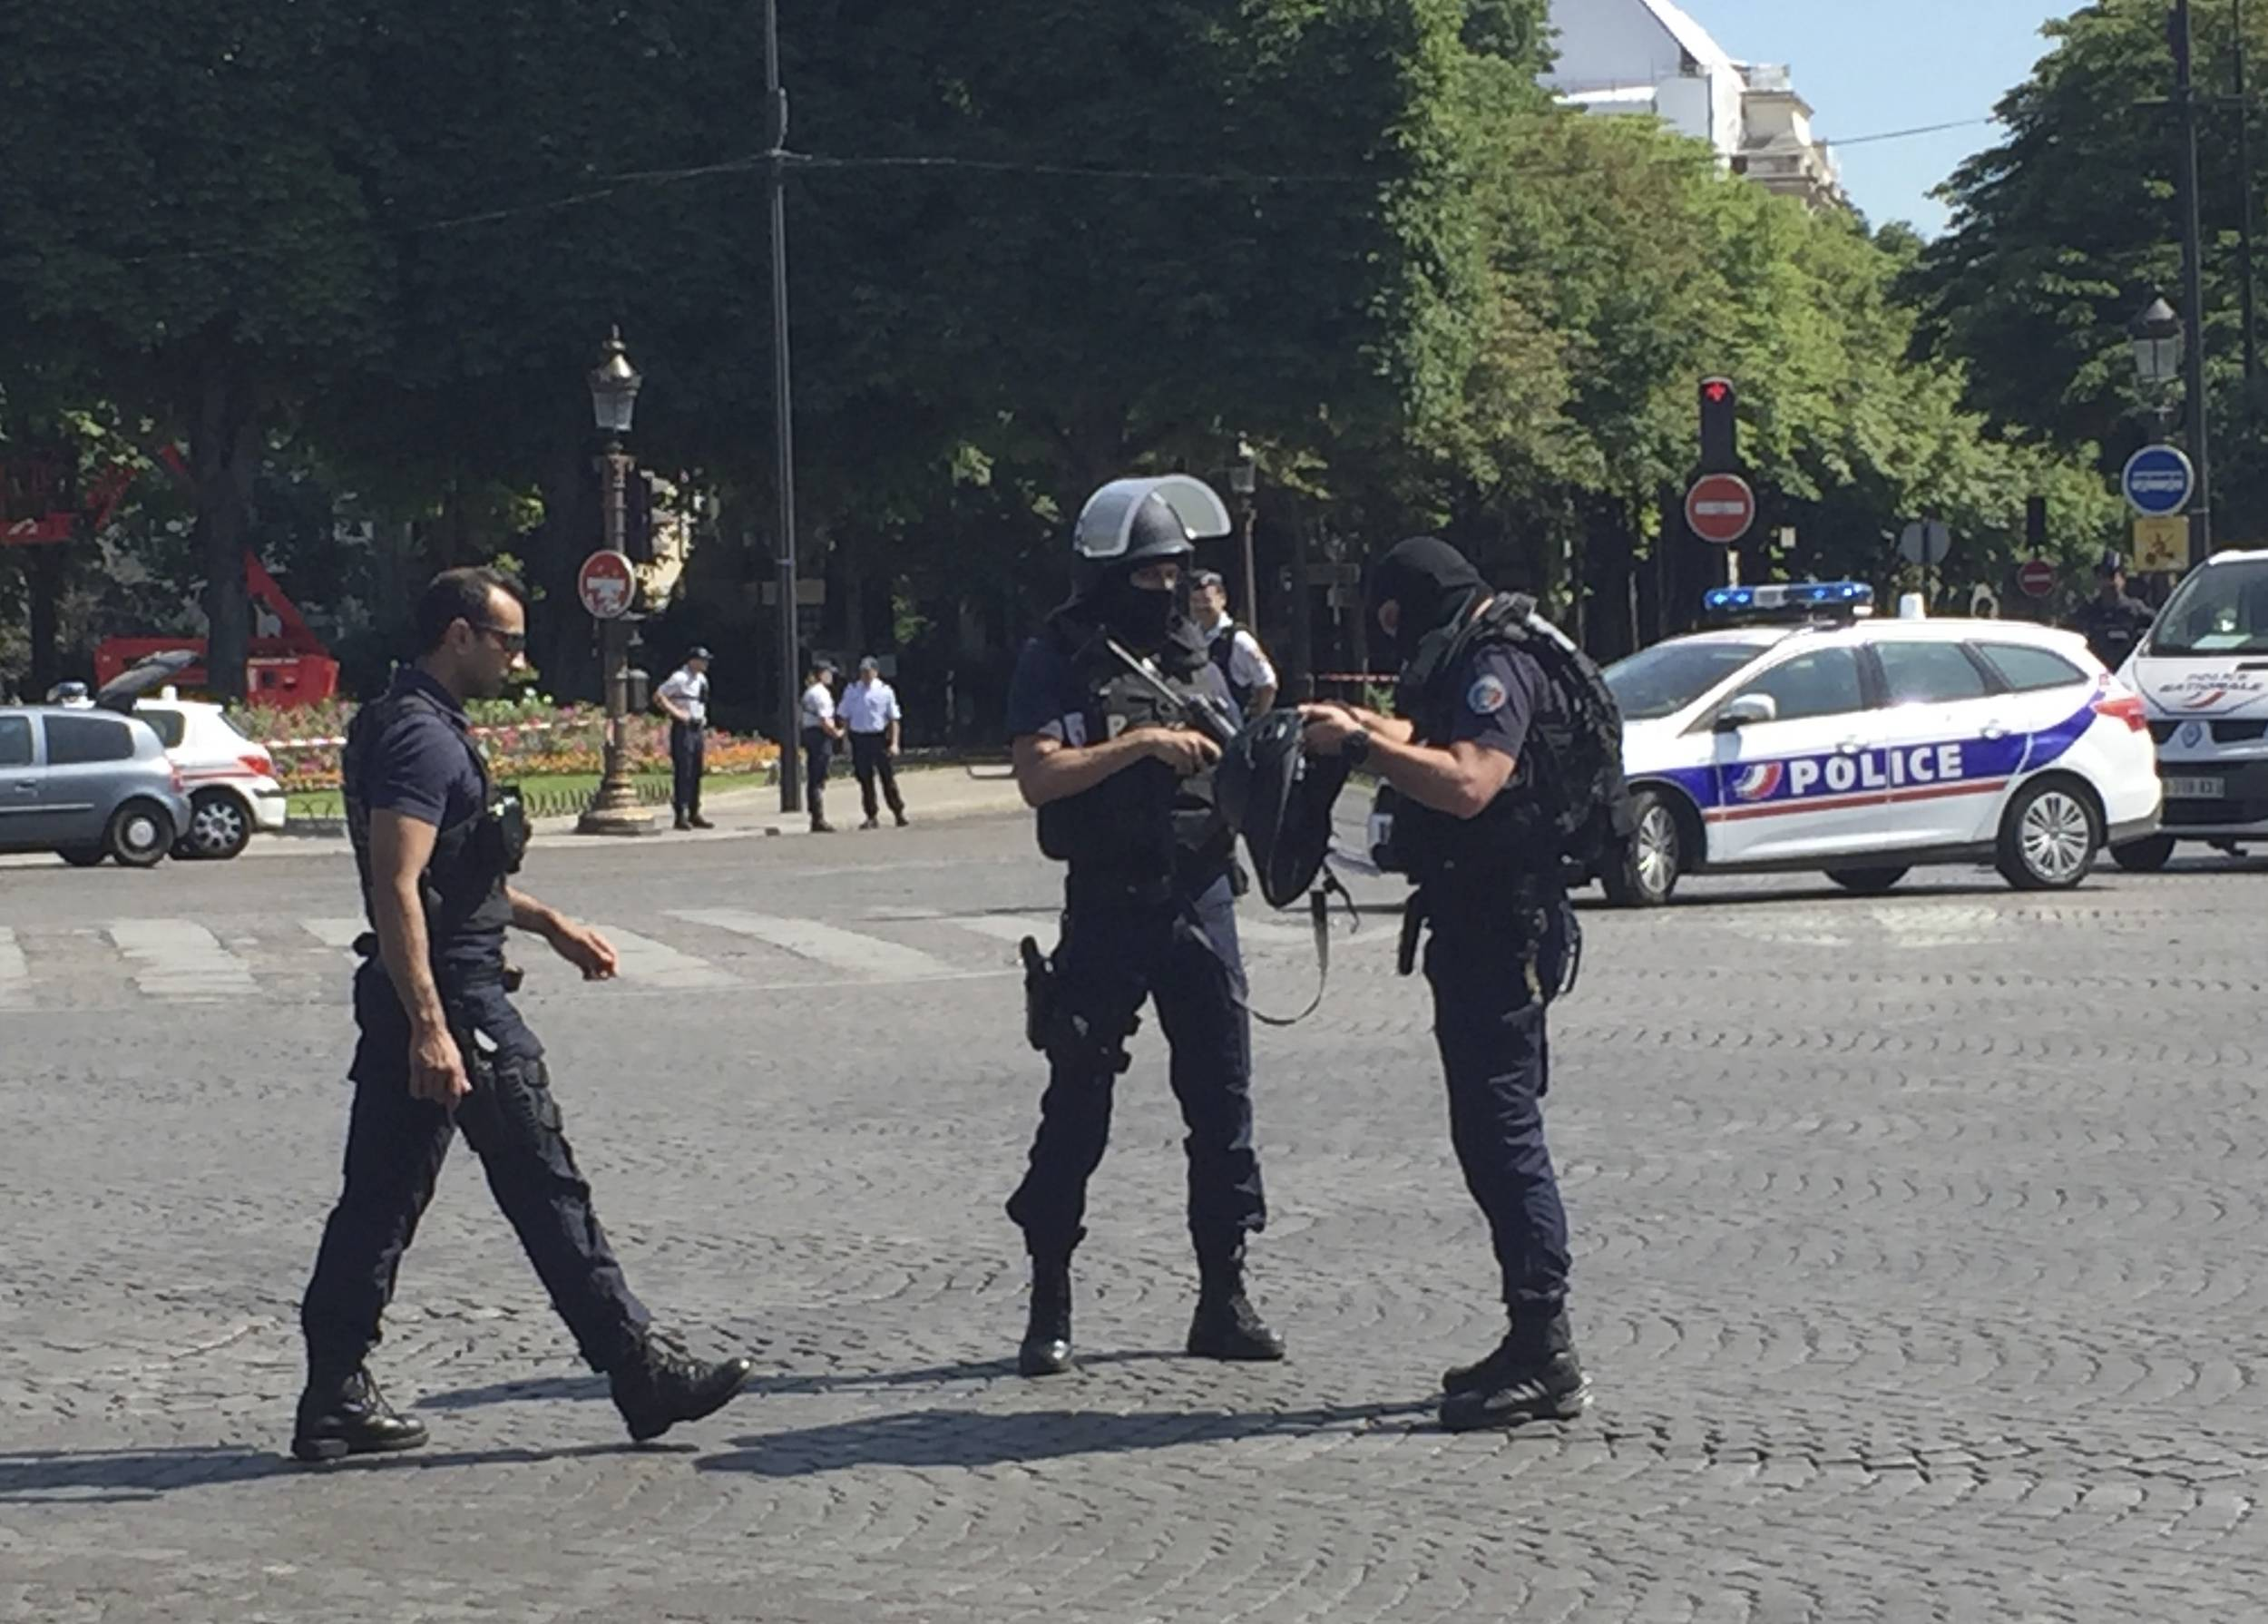 Police officers seal off the access to the Champs Elysees avenue in Paris, France, Monday, June 19, 2017. Paris officials say: Suspected attacker 'downed' after driving into police car on Champs-Élysées.